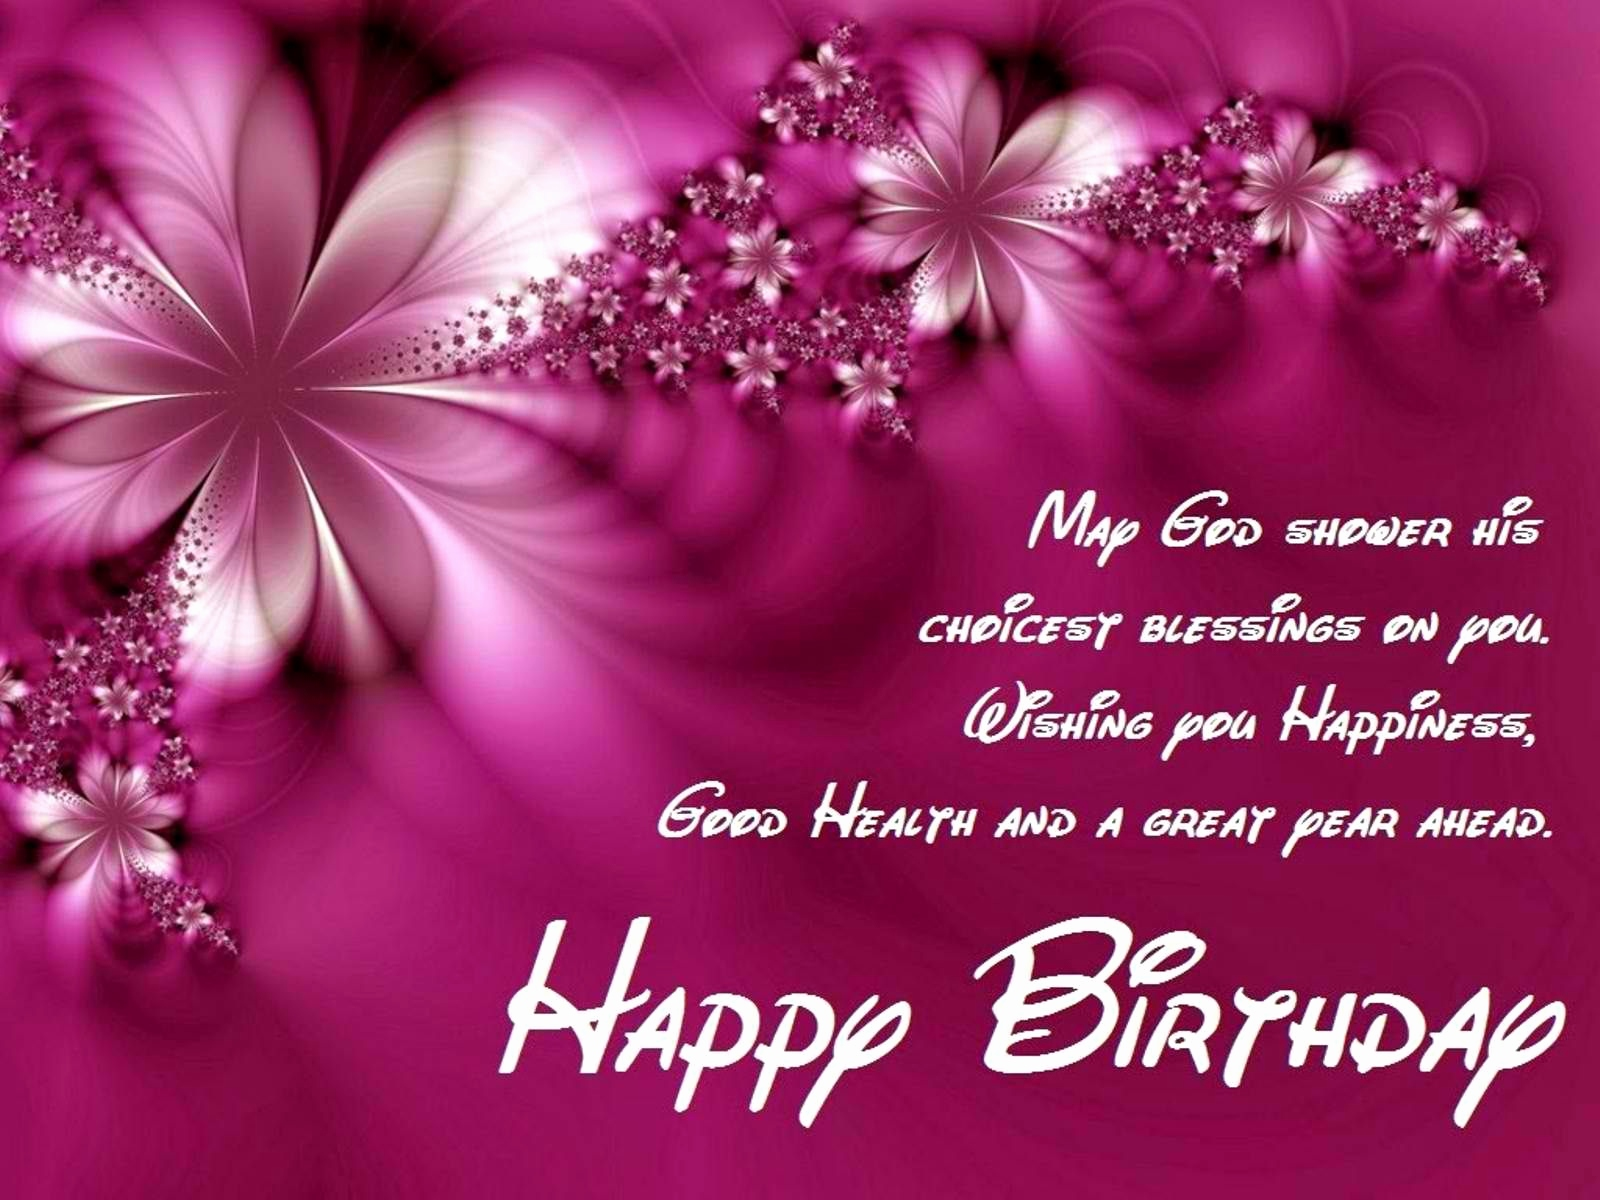 happy birthday messages and quotes ; happy-birthday-card-messages-elegant-lord-jesus-bless-you-birthday-wishes-quotes-and-messages-with-of-happy-birthday-card-messages